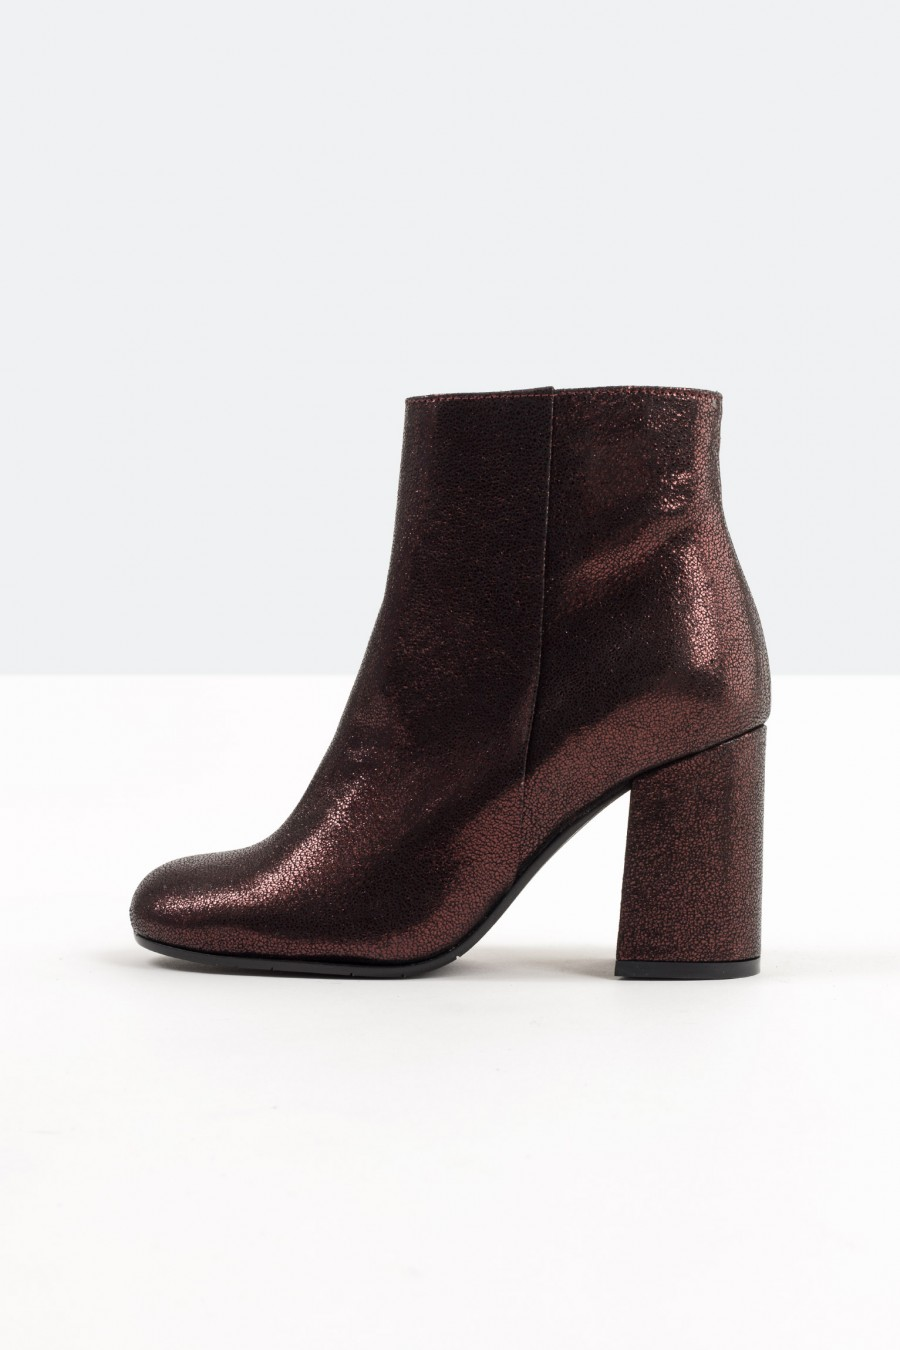 Burgundy leather high heeled ankle boots